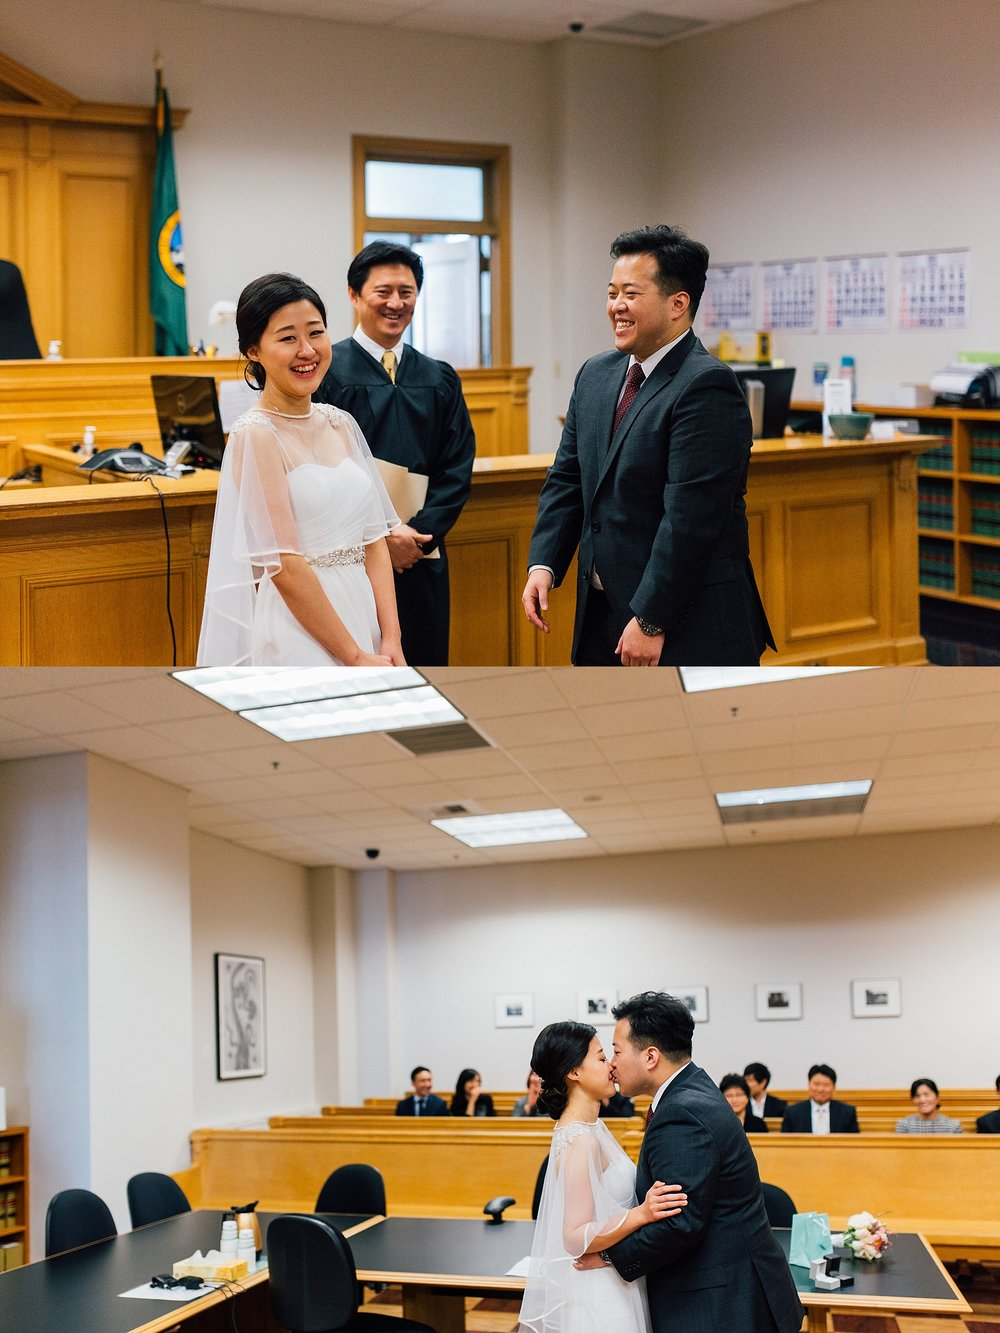 Seattle Courthouse Wedding Photographer PNW elopement Photography - Annie & Alan - Ashley Vos Photography-10.jpg